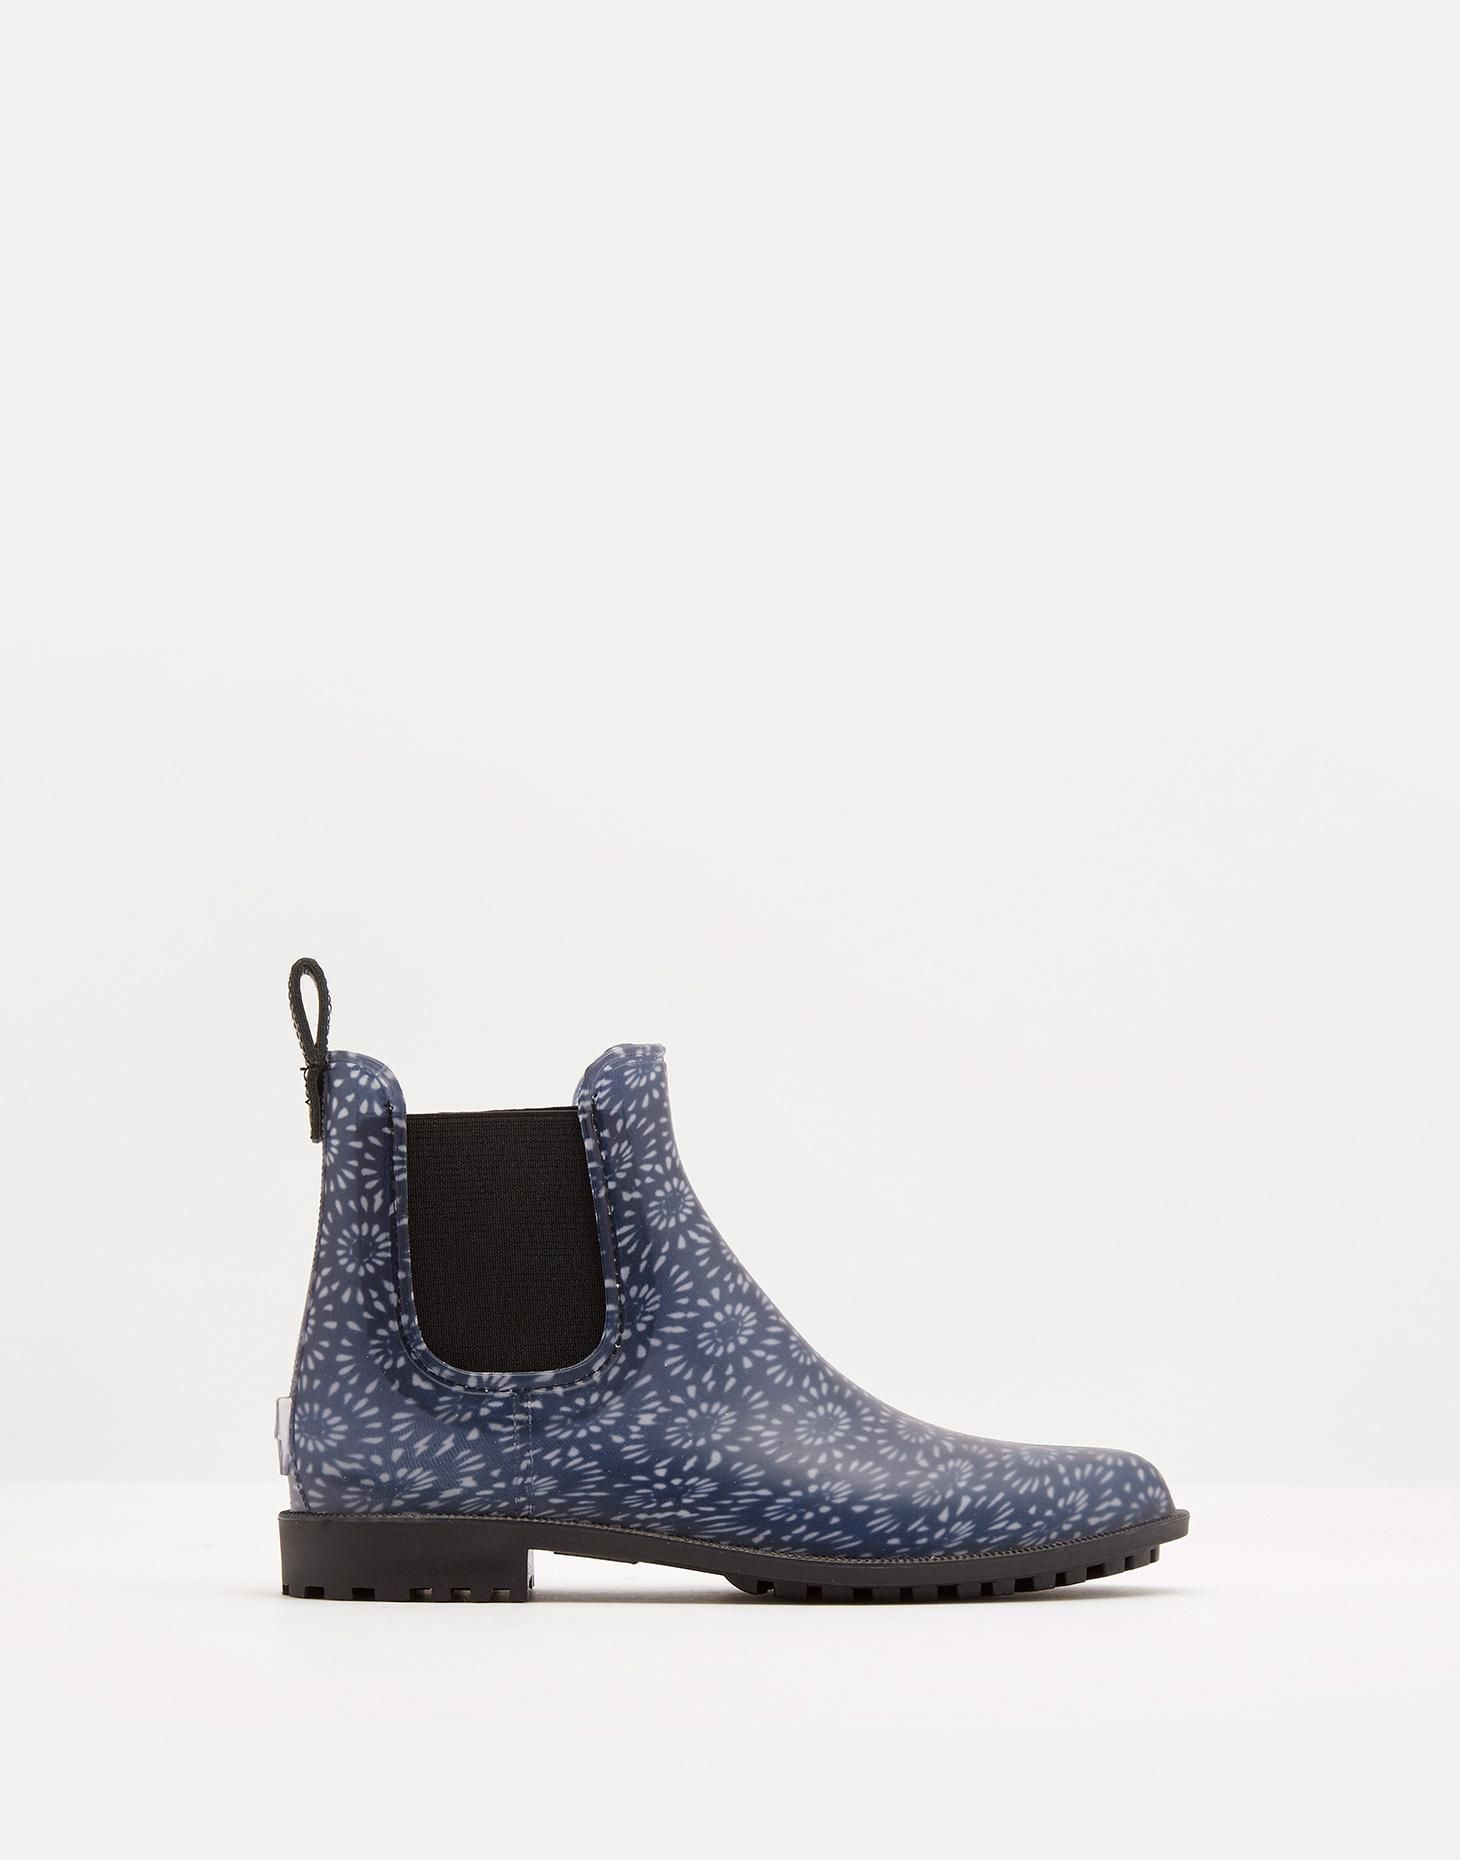 f19a128c088 ROCKINGHAM Waterproof Chelsea Boots | Style | Chelsea boots, Boots ...